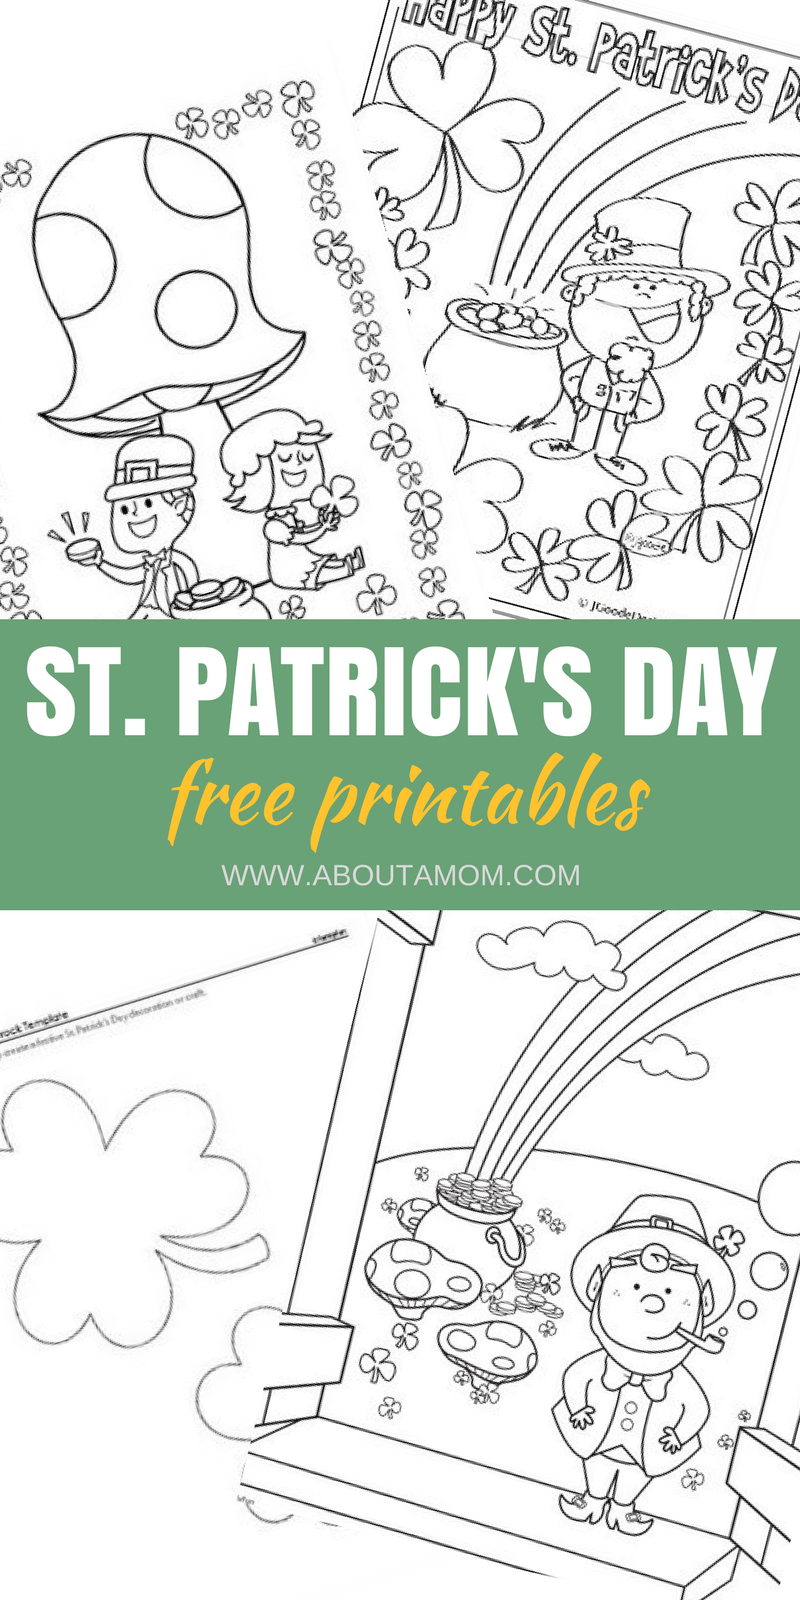 I have rounded up some of the best free printable coloring and activity sheets for St Patrick's Day. Enjoy!